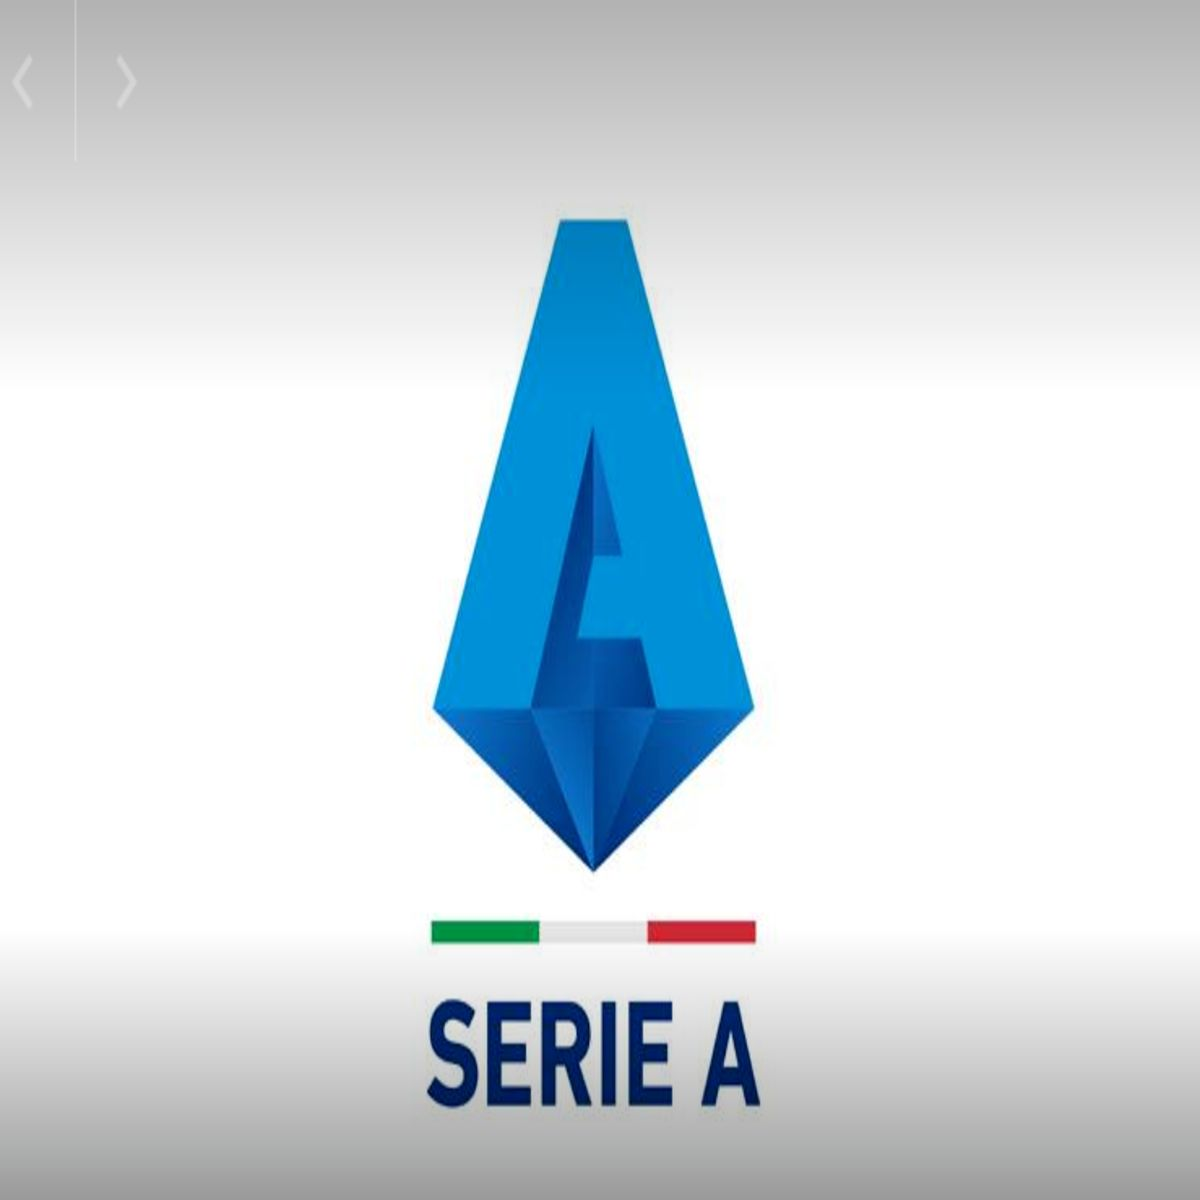 Partite weekend Serie A: il calendario completo